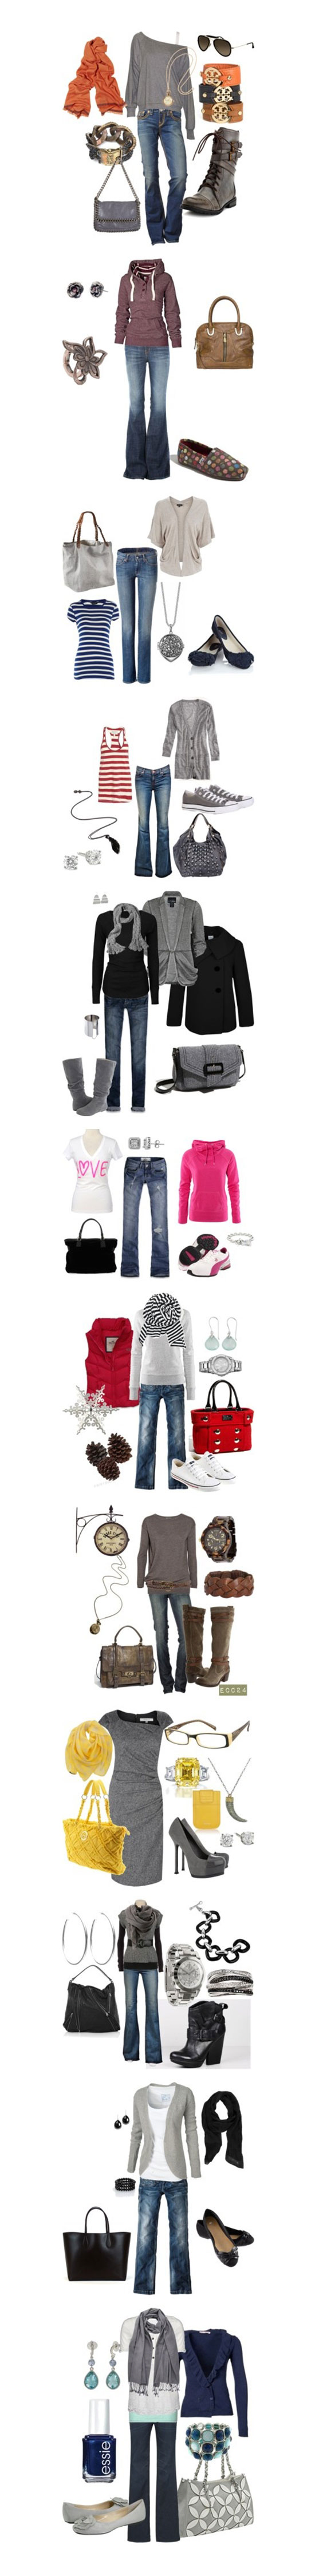 Latest-Casual-Winter-Fashion-Trends-Ideas-2013-For-Girls-Women-1